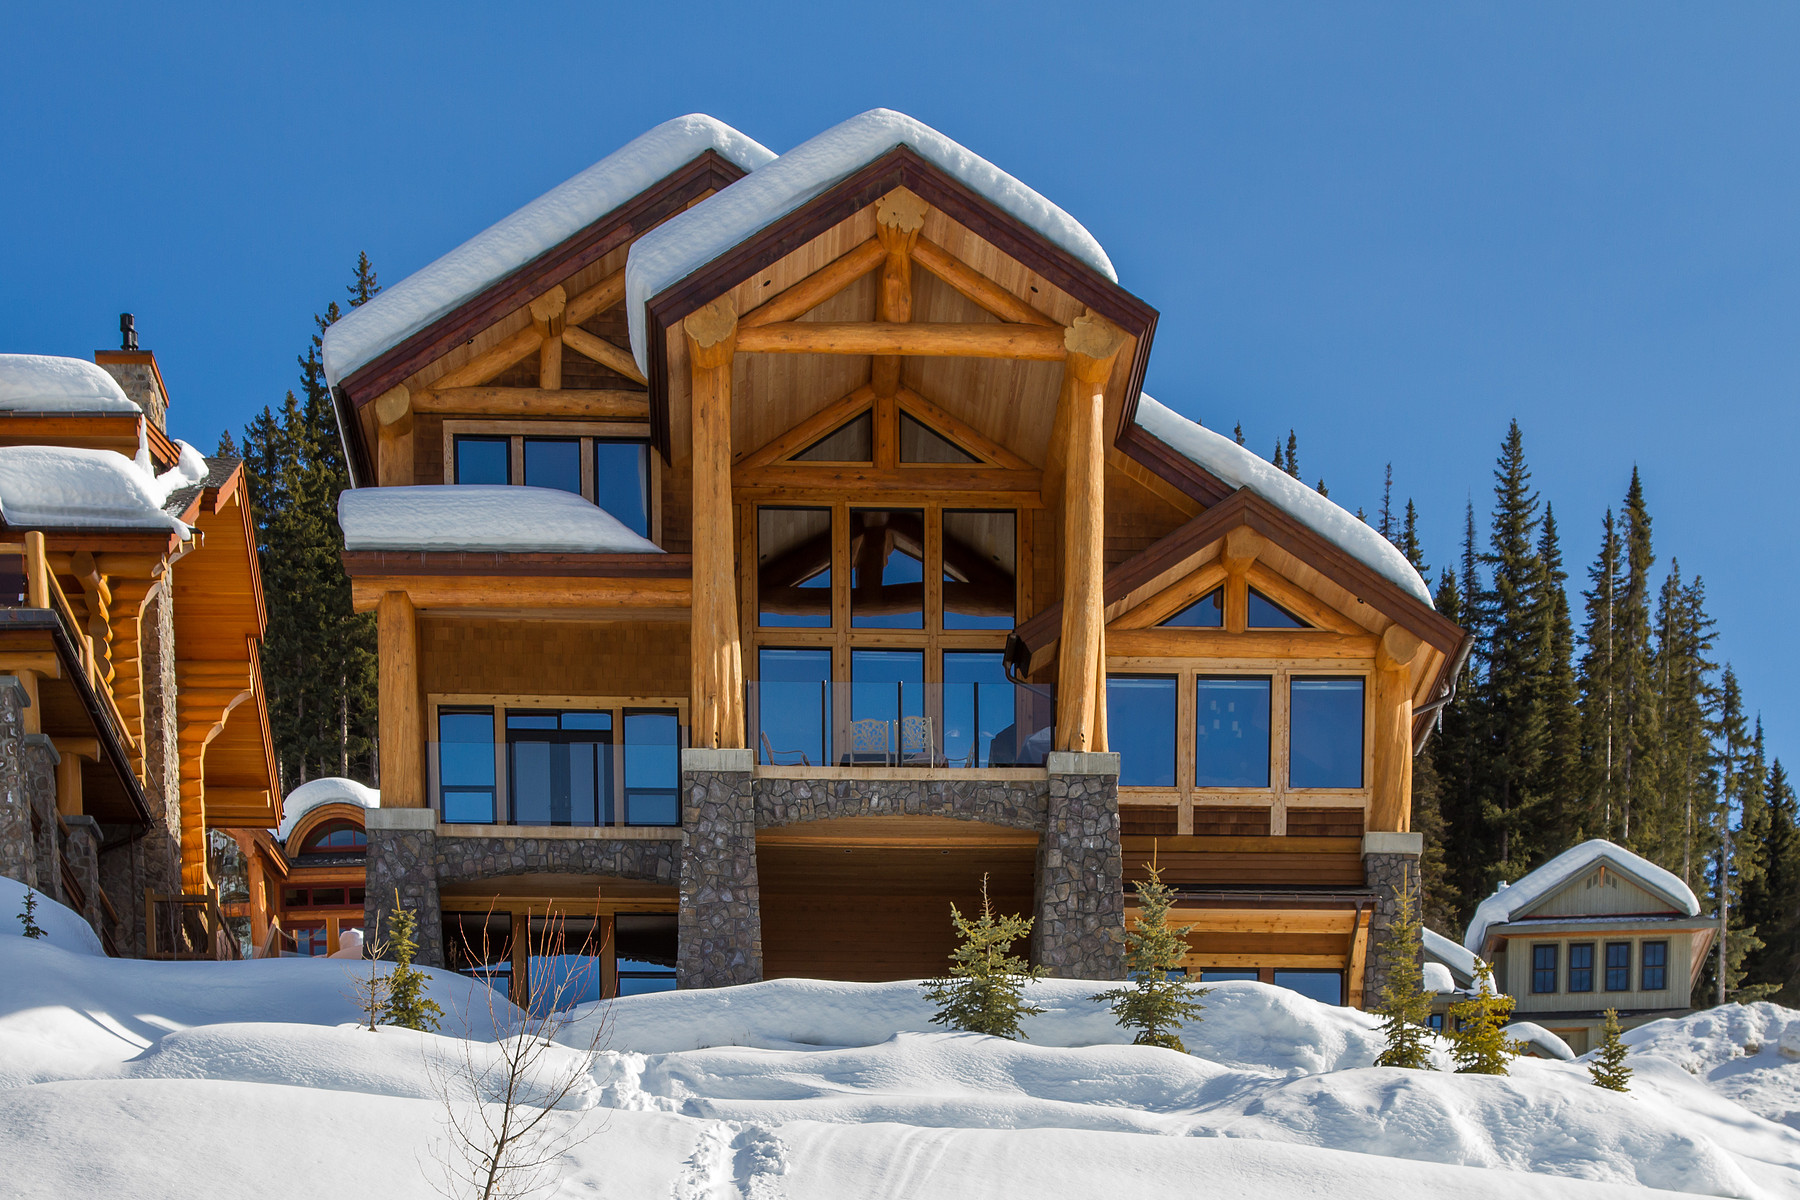 Property For Sale at Ski-In / Ski-Out Log Post & Beam Chalet